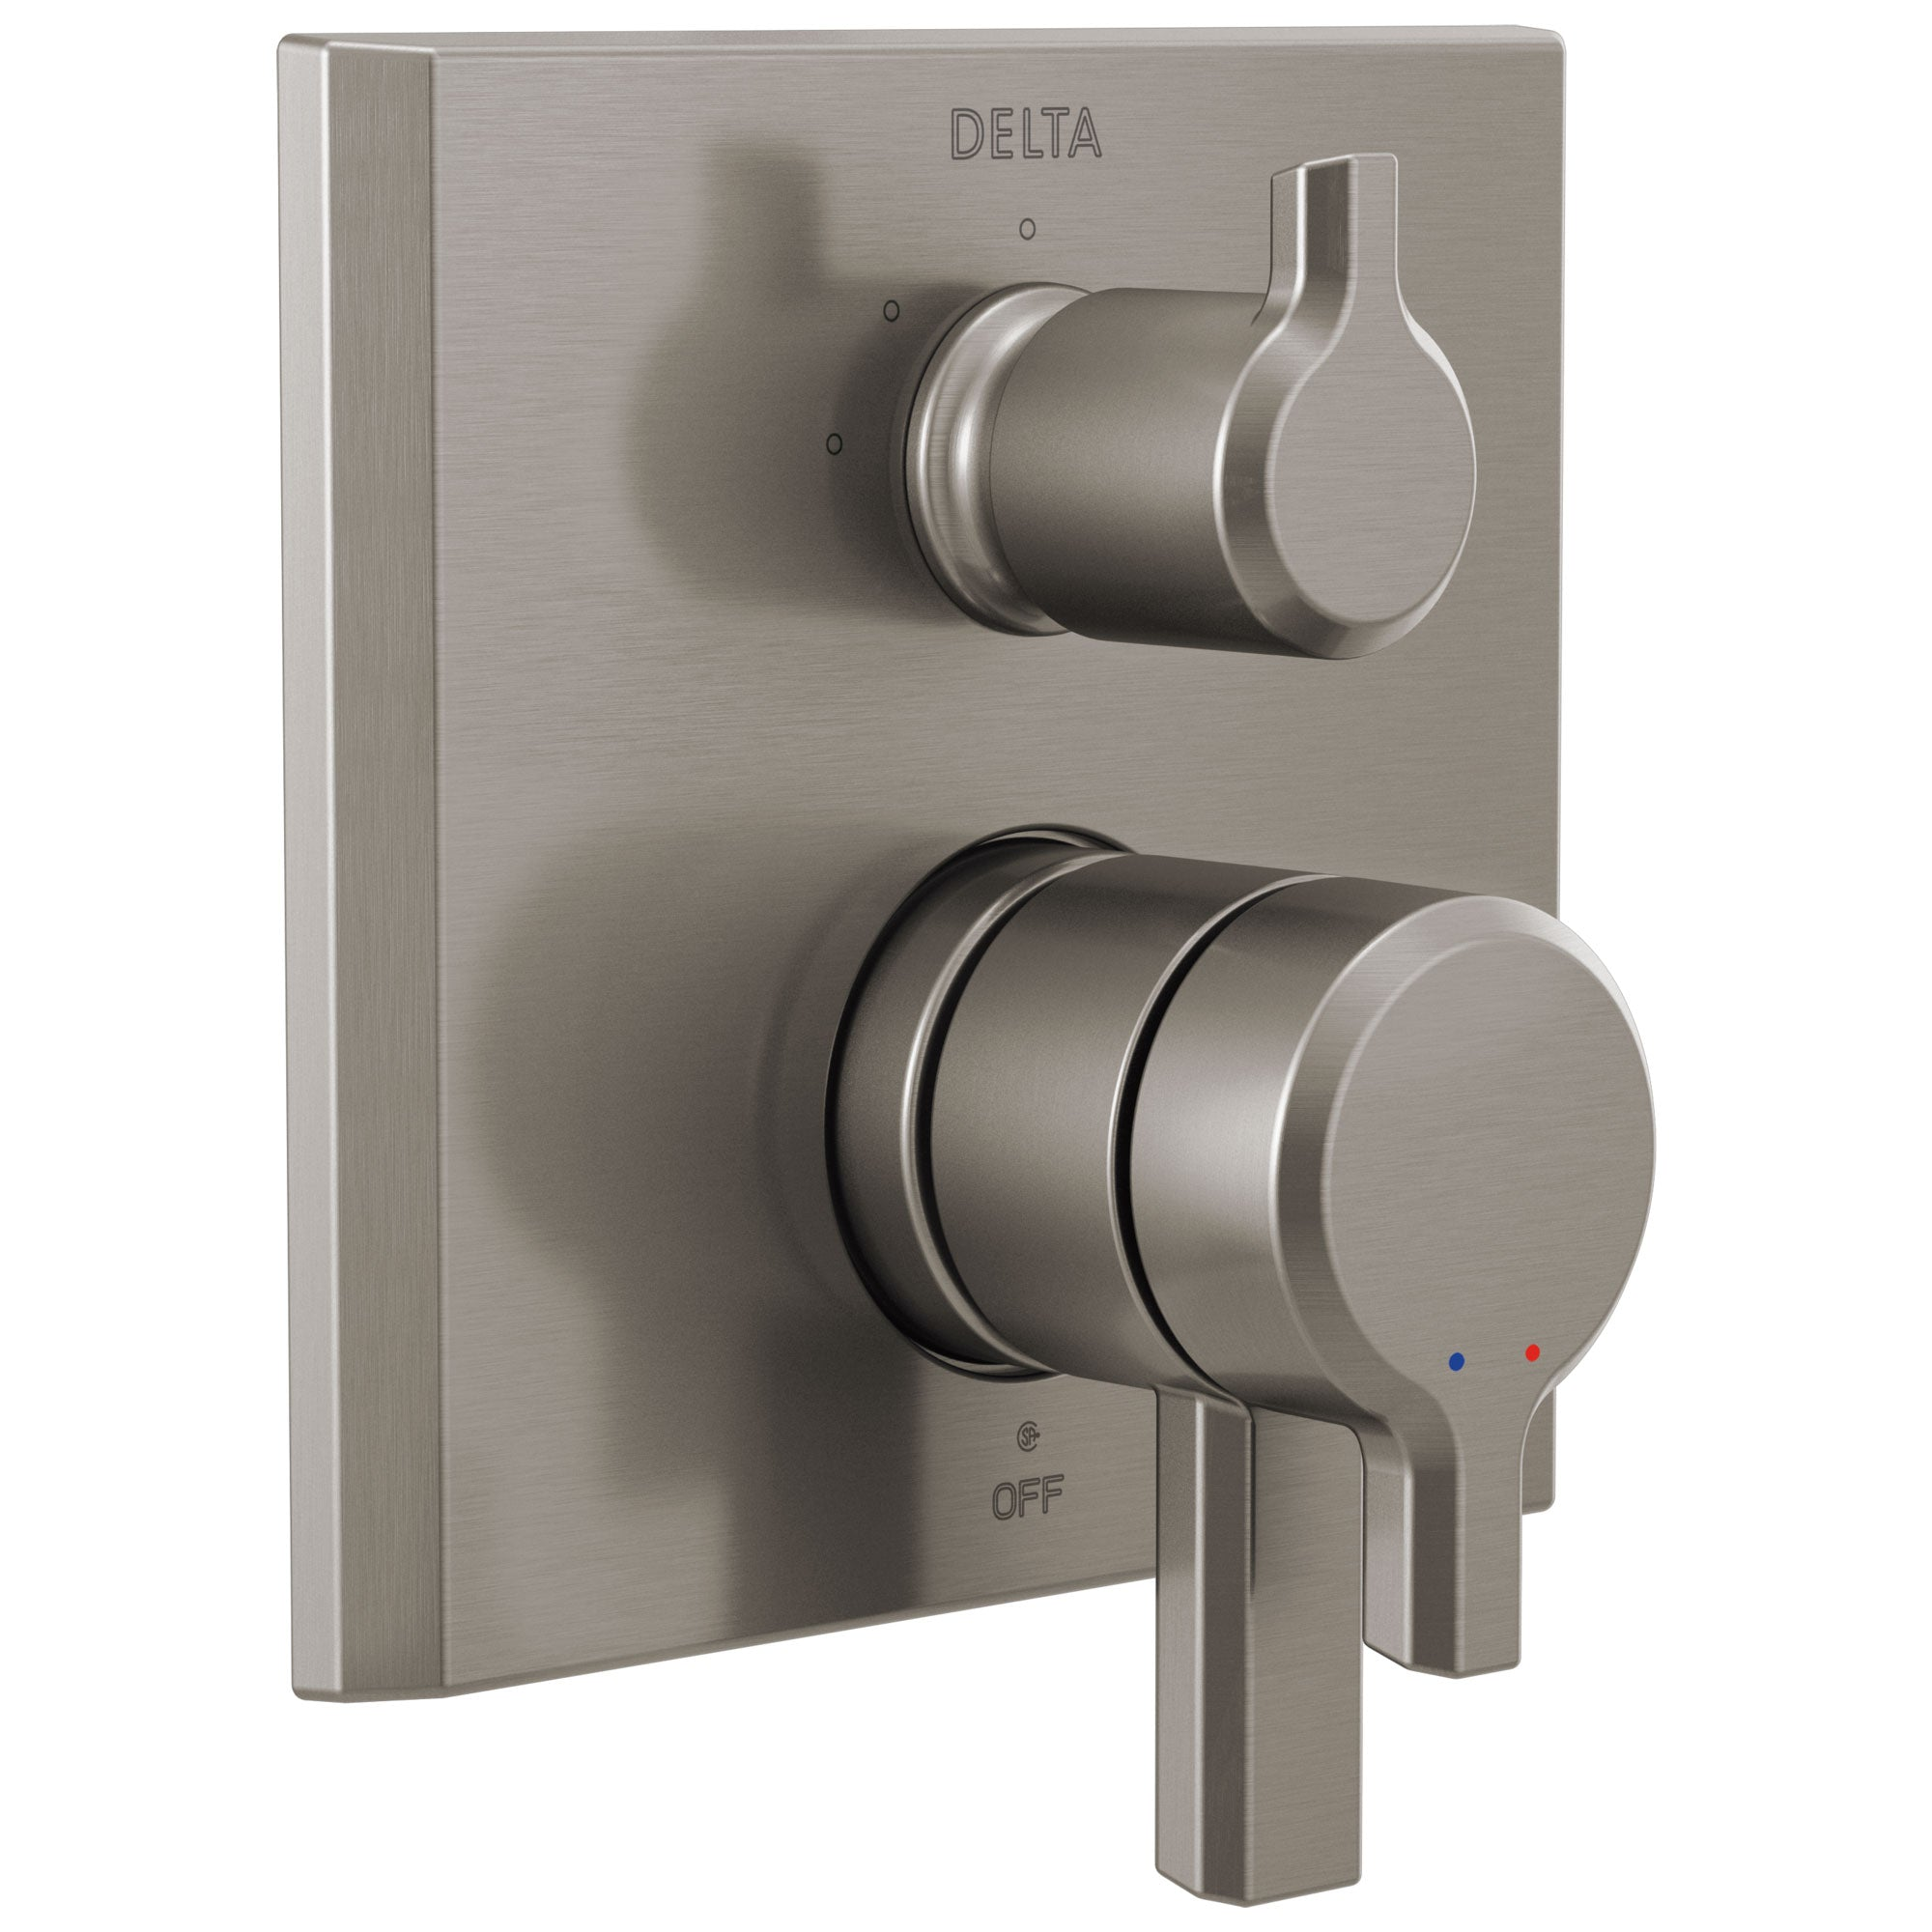 Delta Pivotal Stainless Steel Finish Monitor 17 Series Shower System Control with 3-Setting Diverter Includes Rough-in Valve and Handles D3134V